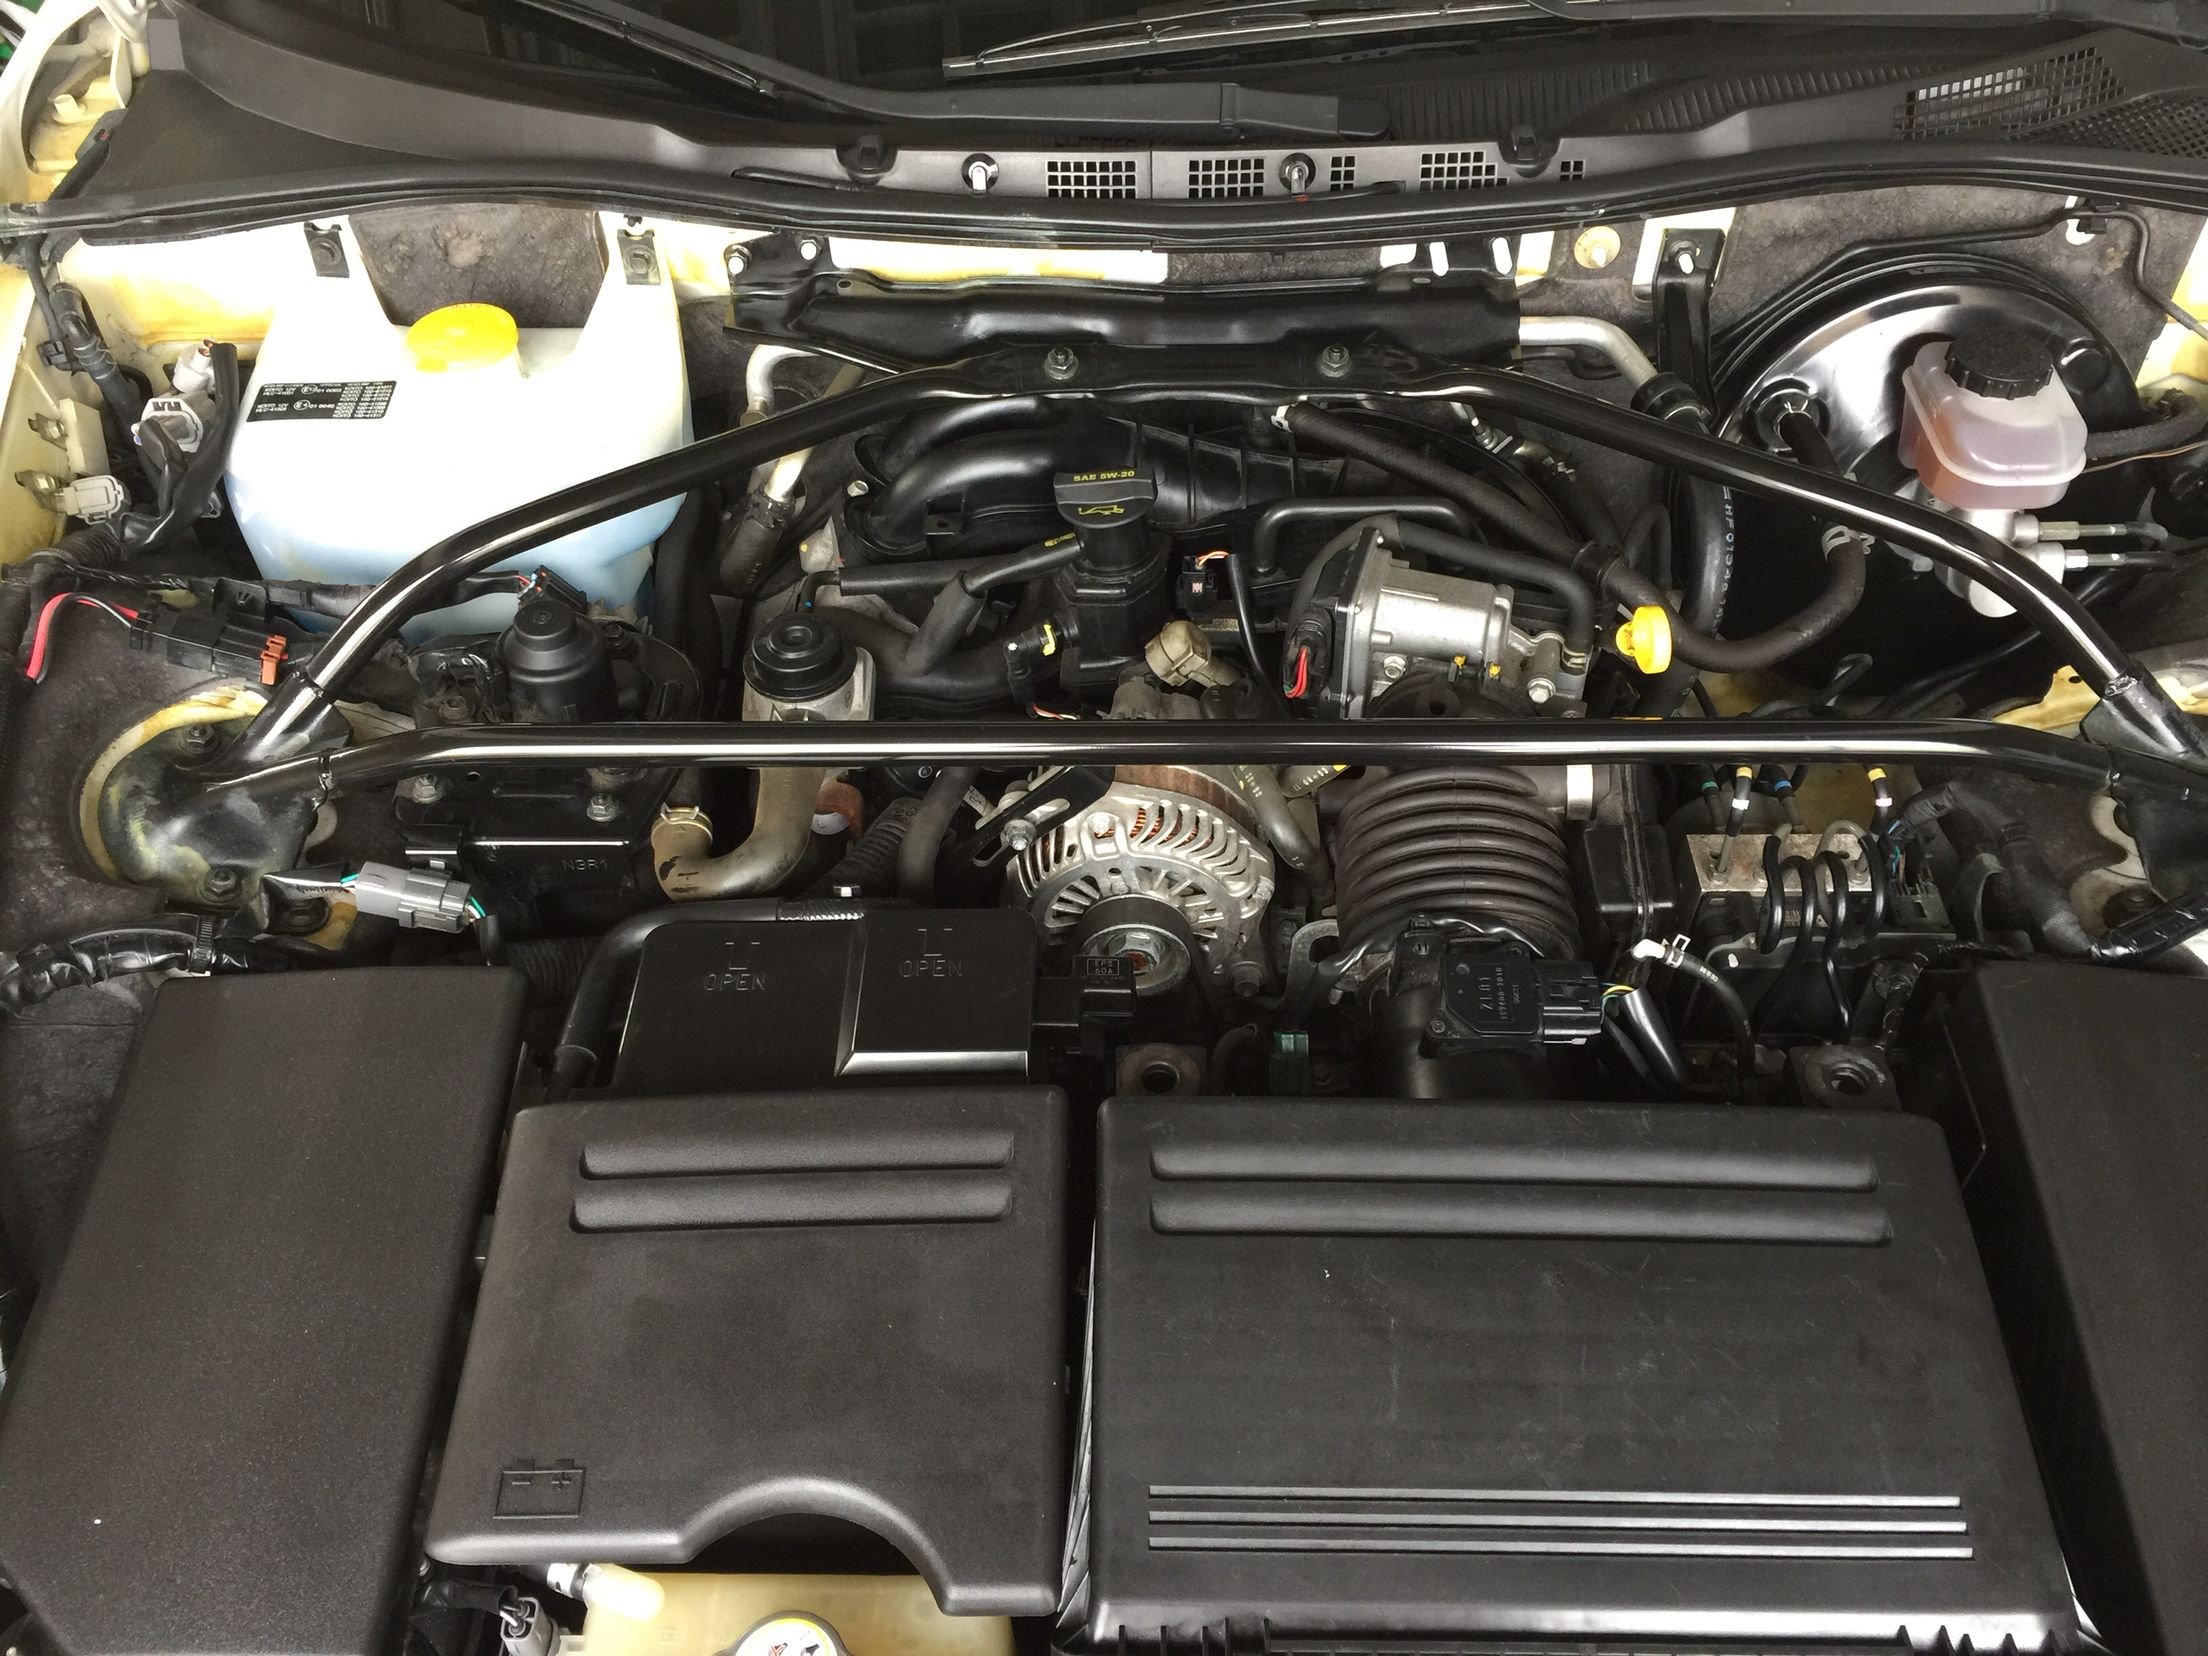 series 2 rx-8 engine bay | wankel rotary engines | pinterest